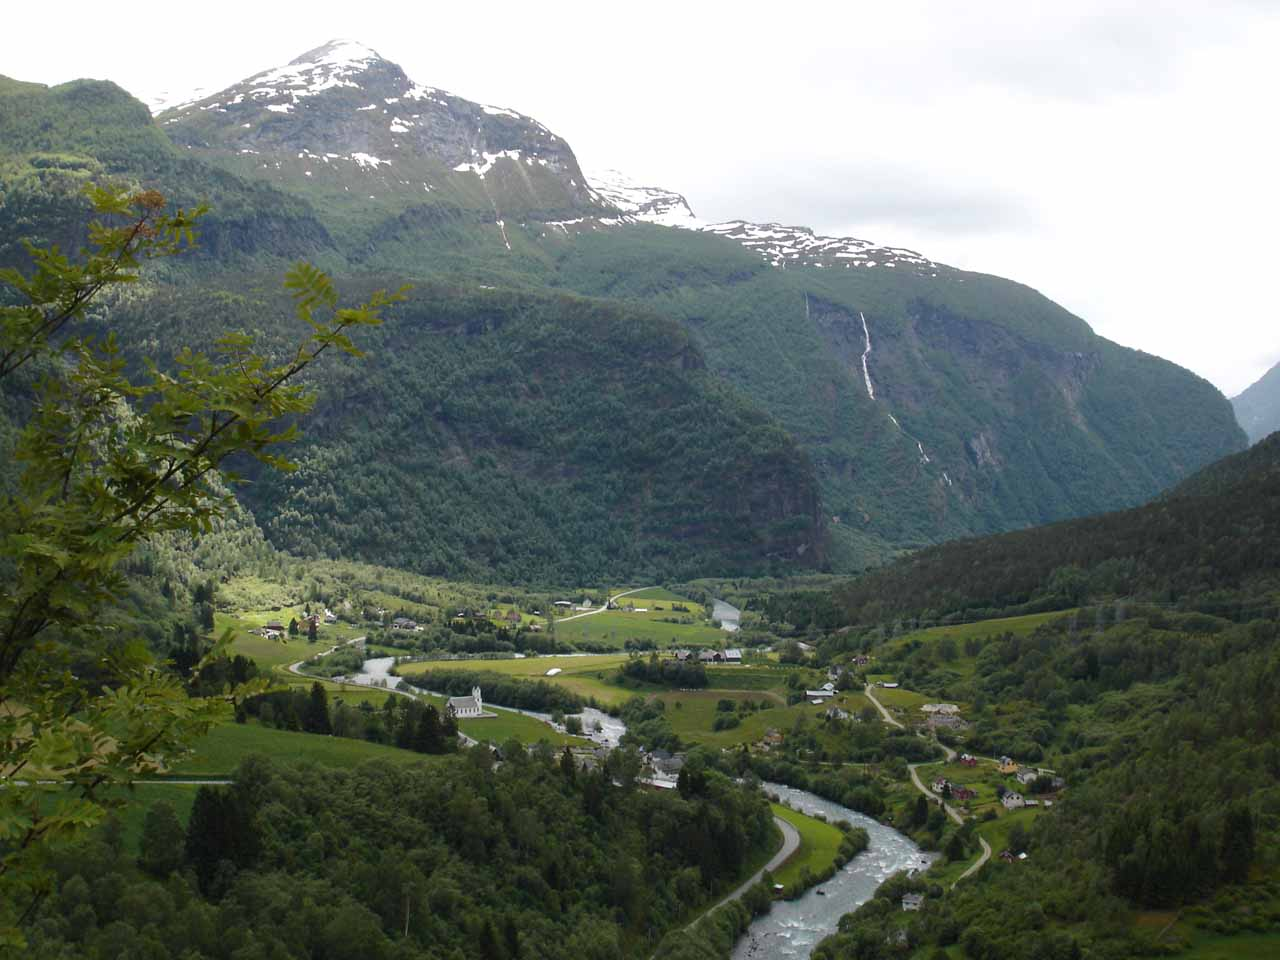 After visiting Hjellefossen and the other Utladalen Waterfalls earlier in the day, we then took the Summer-route to Turtagrø via Fardalen as kind of a back way to Lustrafjorden and Skjolden